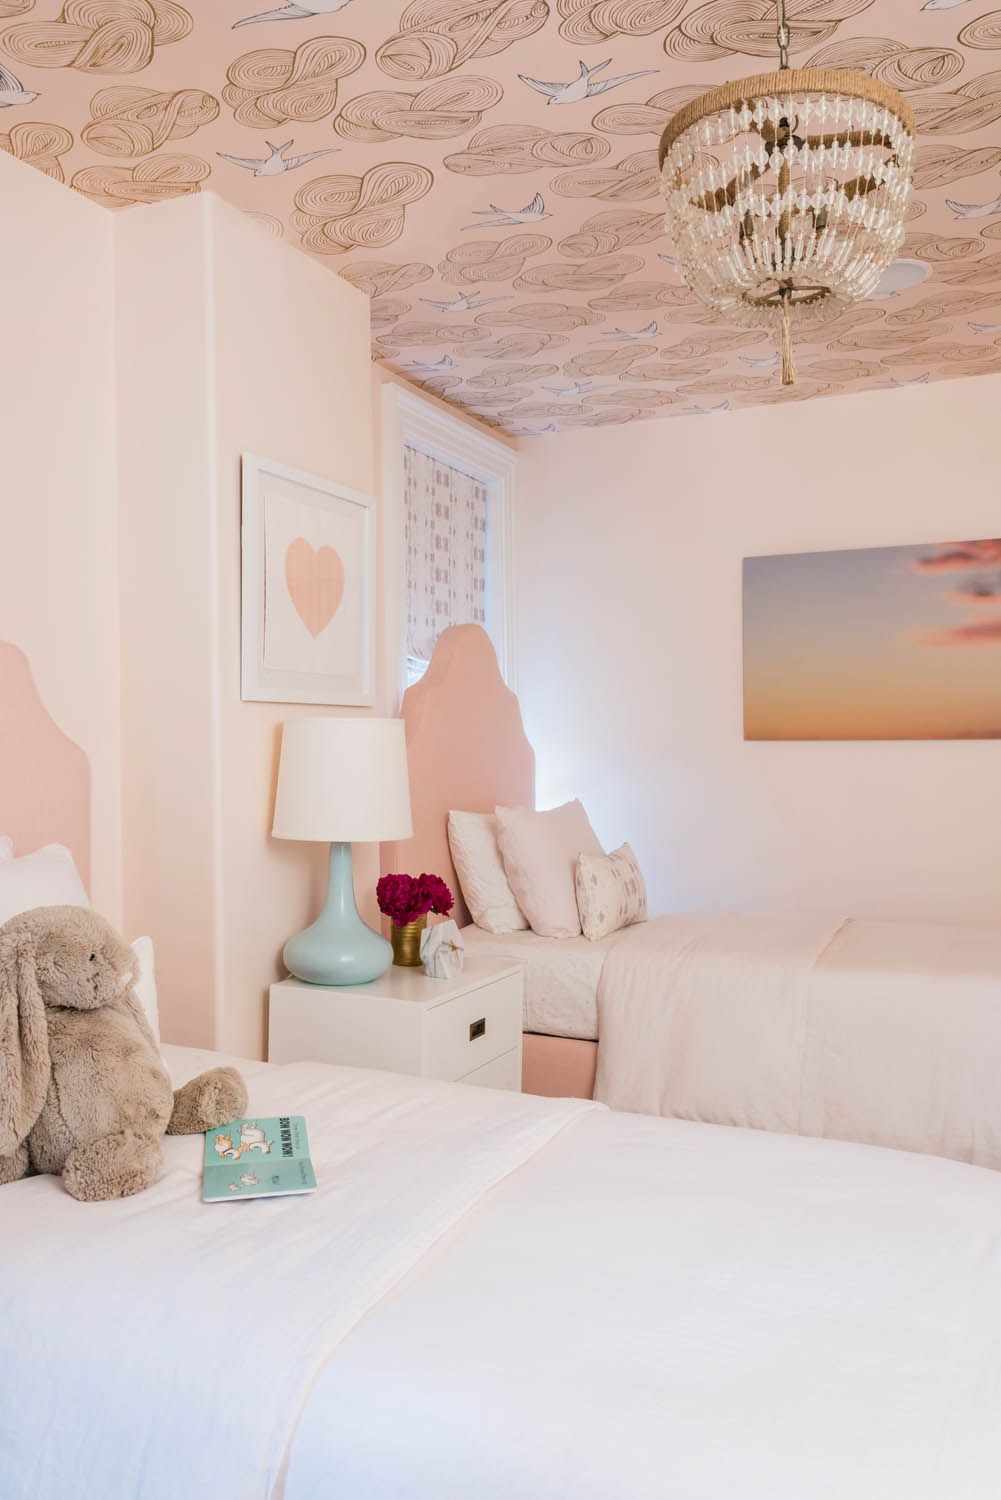 bedroom, off white wall, pink bed platform, white side cabinet, white blue table lamp, patterned ceiling, chandelier